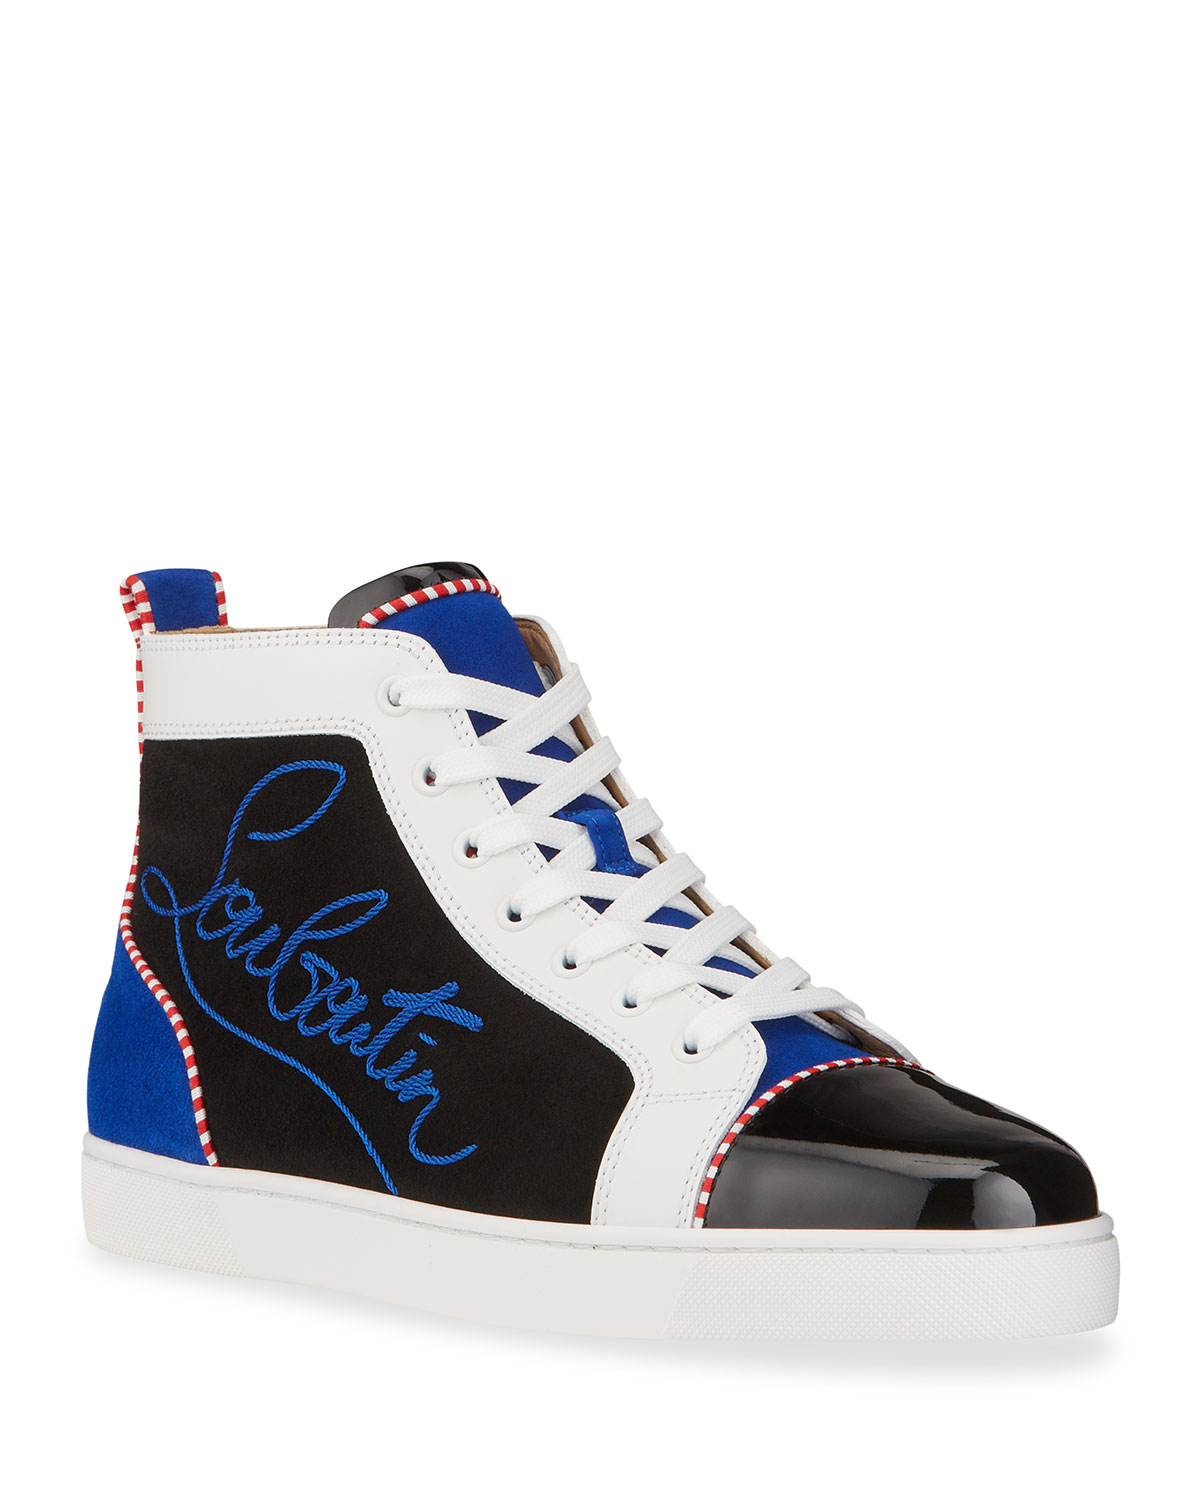 Christian Louboutin MEN'S LOUIS LEATHER/SUEDE HIGH-TOP SNEAKERS